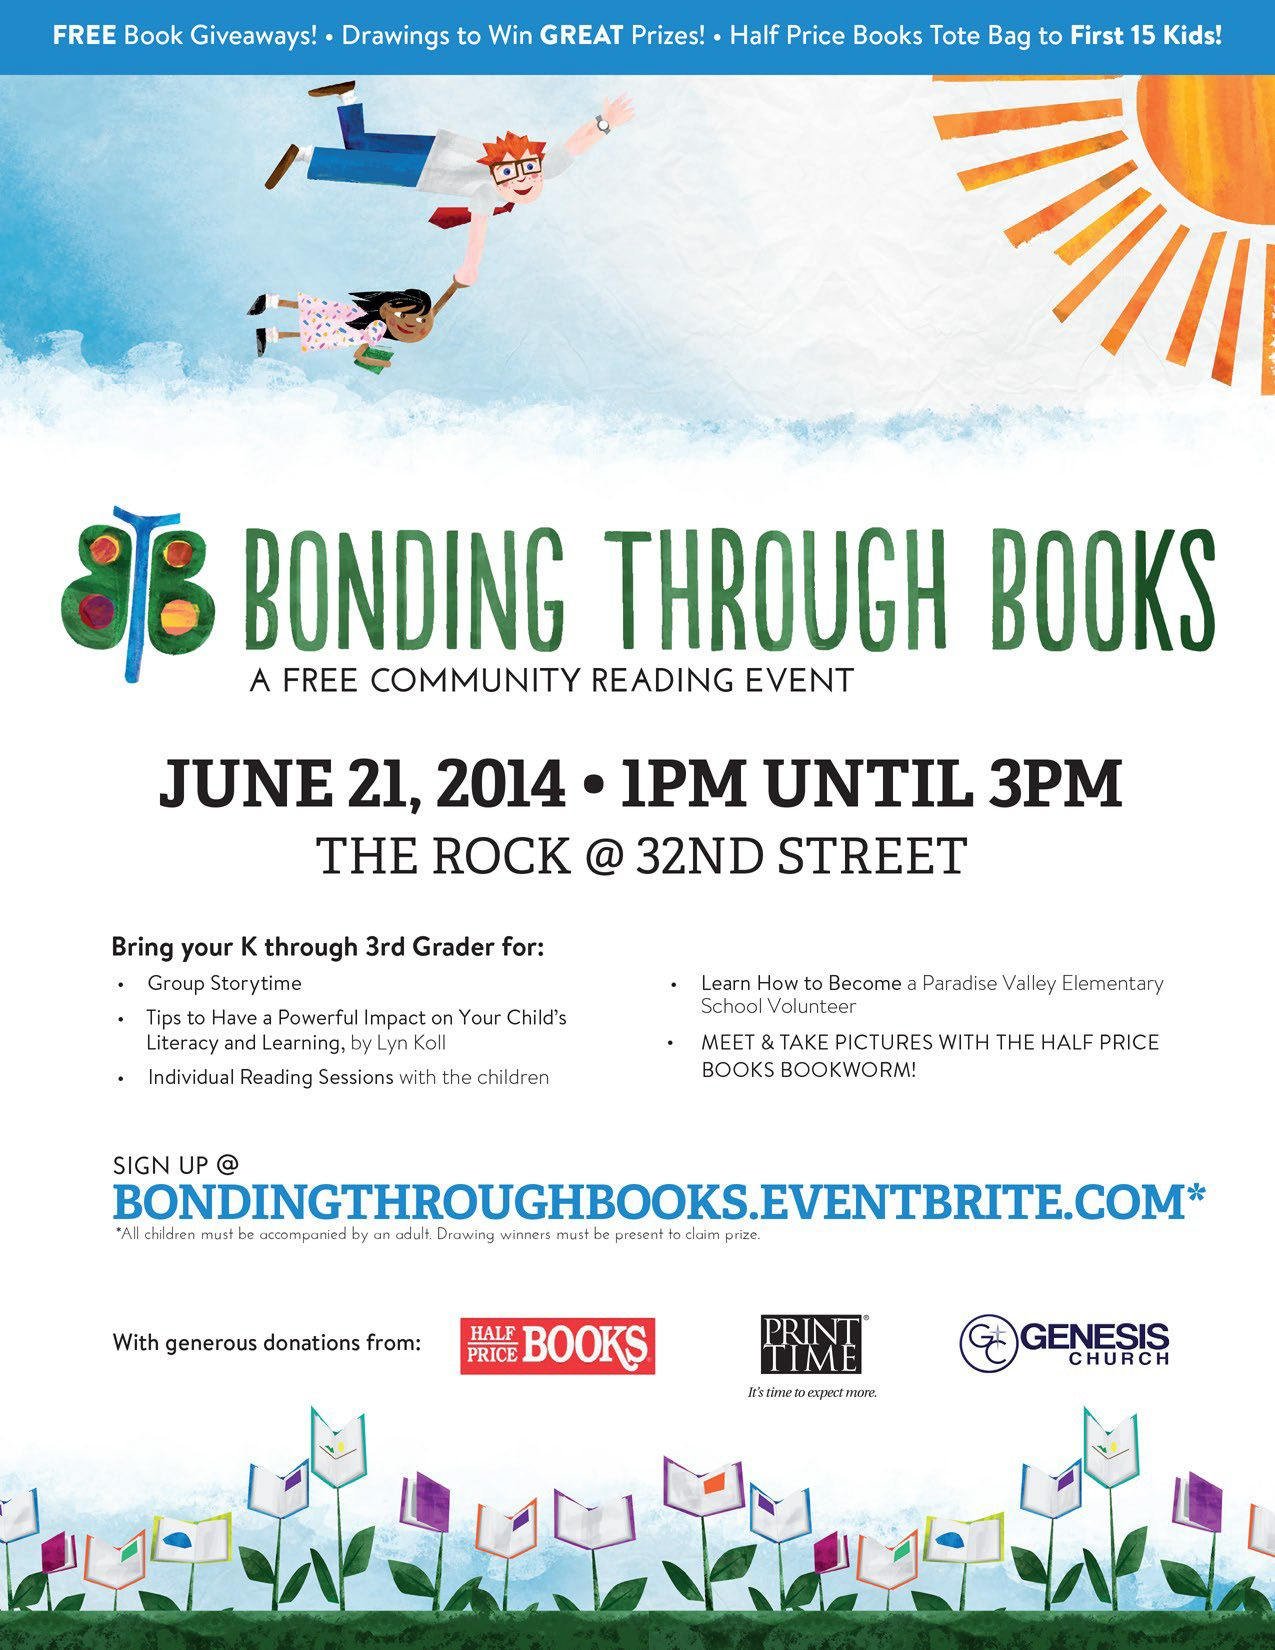 flyer example literacy flyers bonding through books community reading event flyer